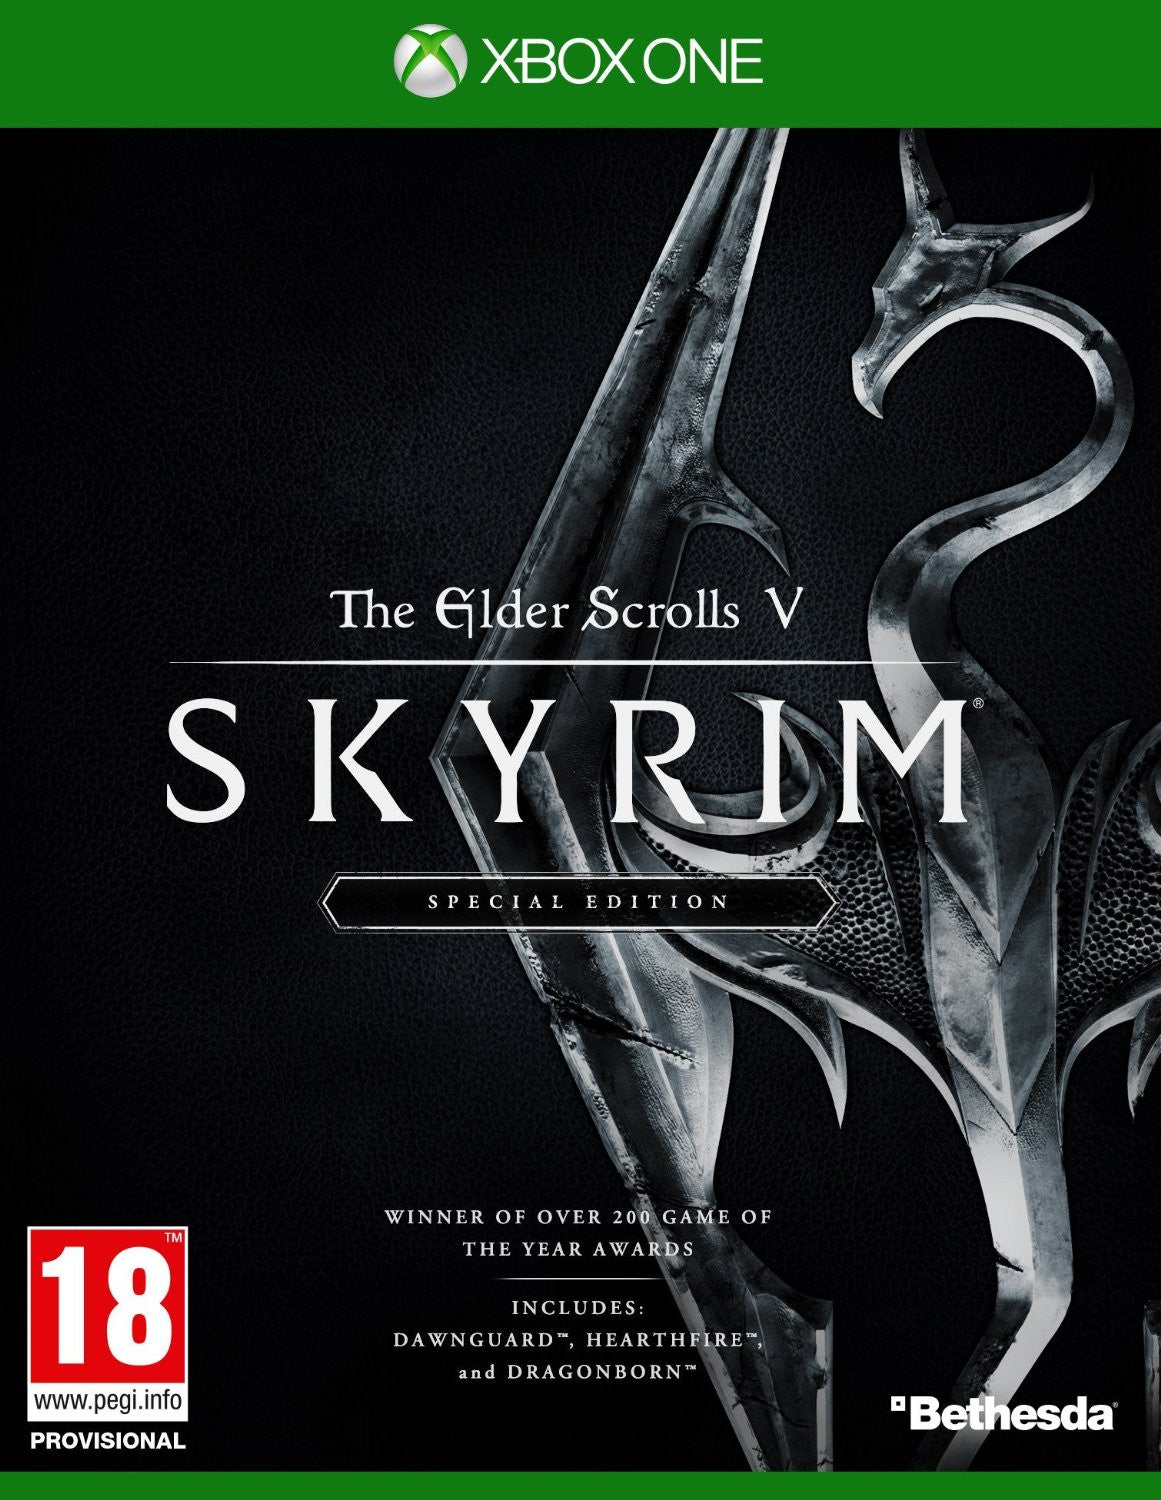 The Elder Scrolls V: Skyrim Special Edition Xbox One